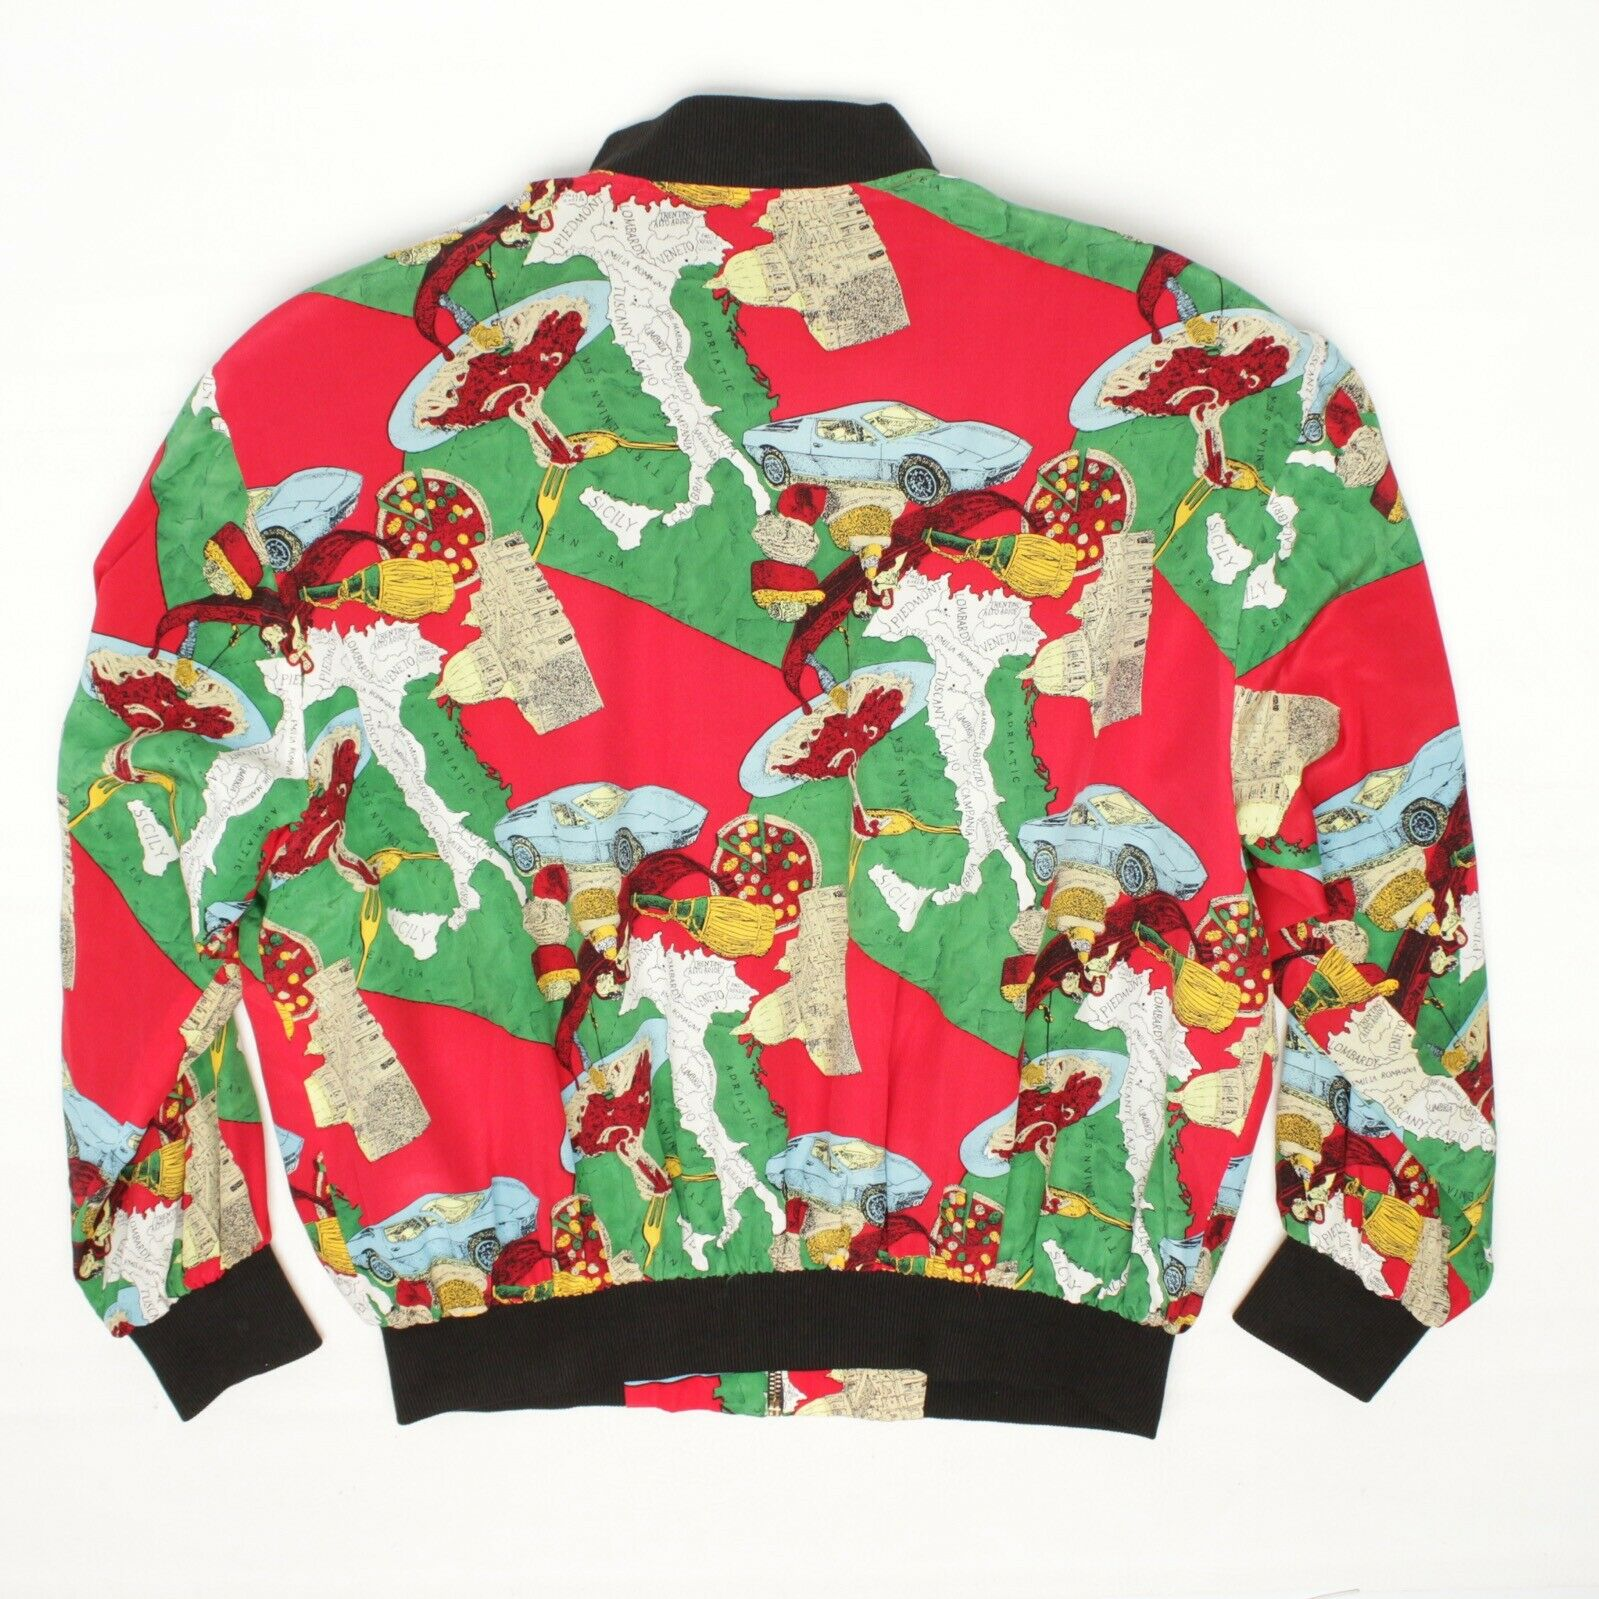 Silk Bomber Jacket L Red Green Italy Print Sports… - image 3